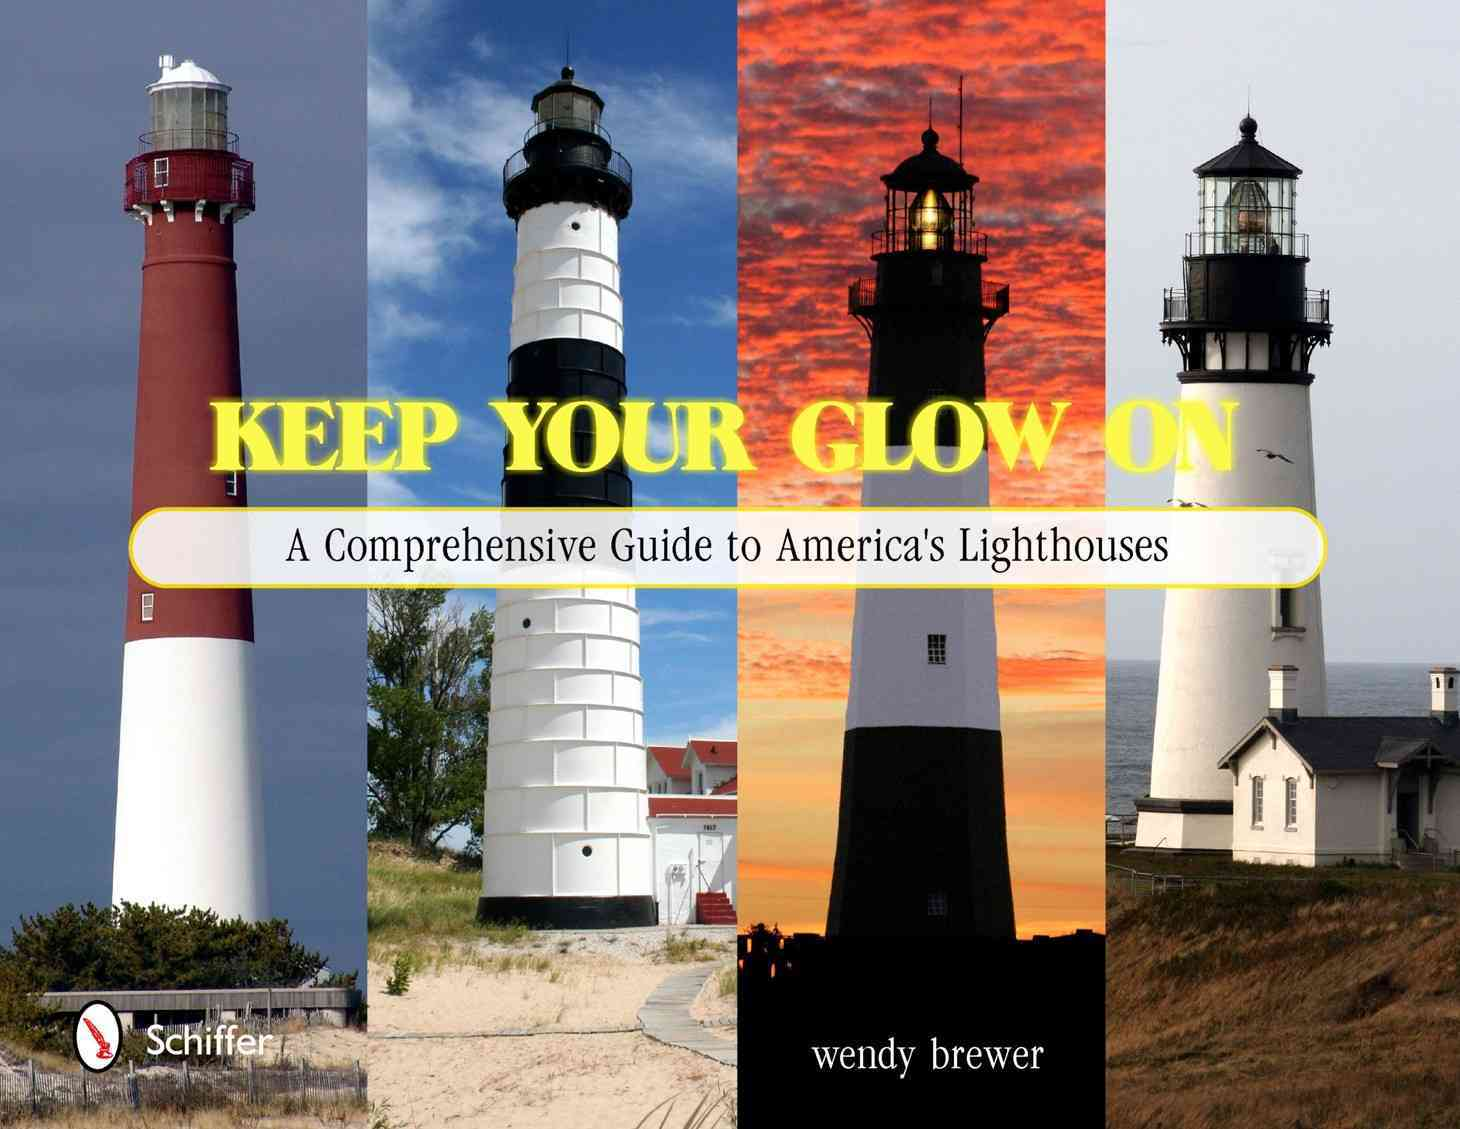 Keep Your Glow On: A Comprehensive Guide to America's Lighthouses (Hardcover)